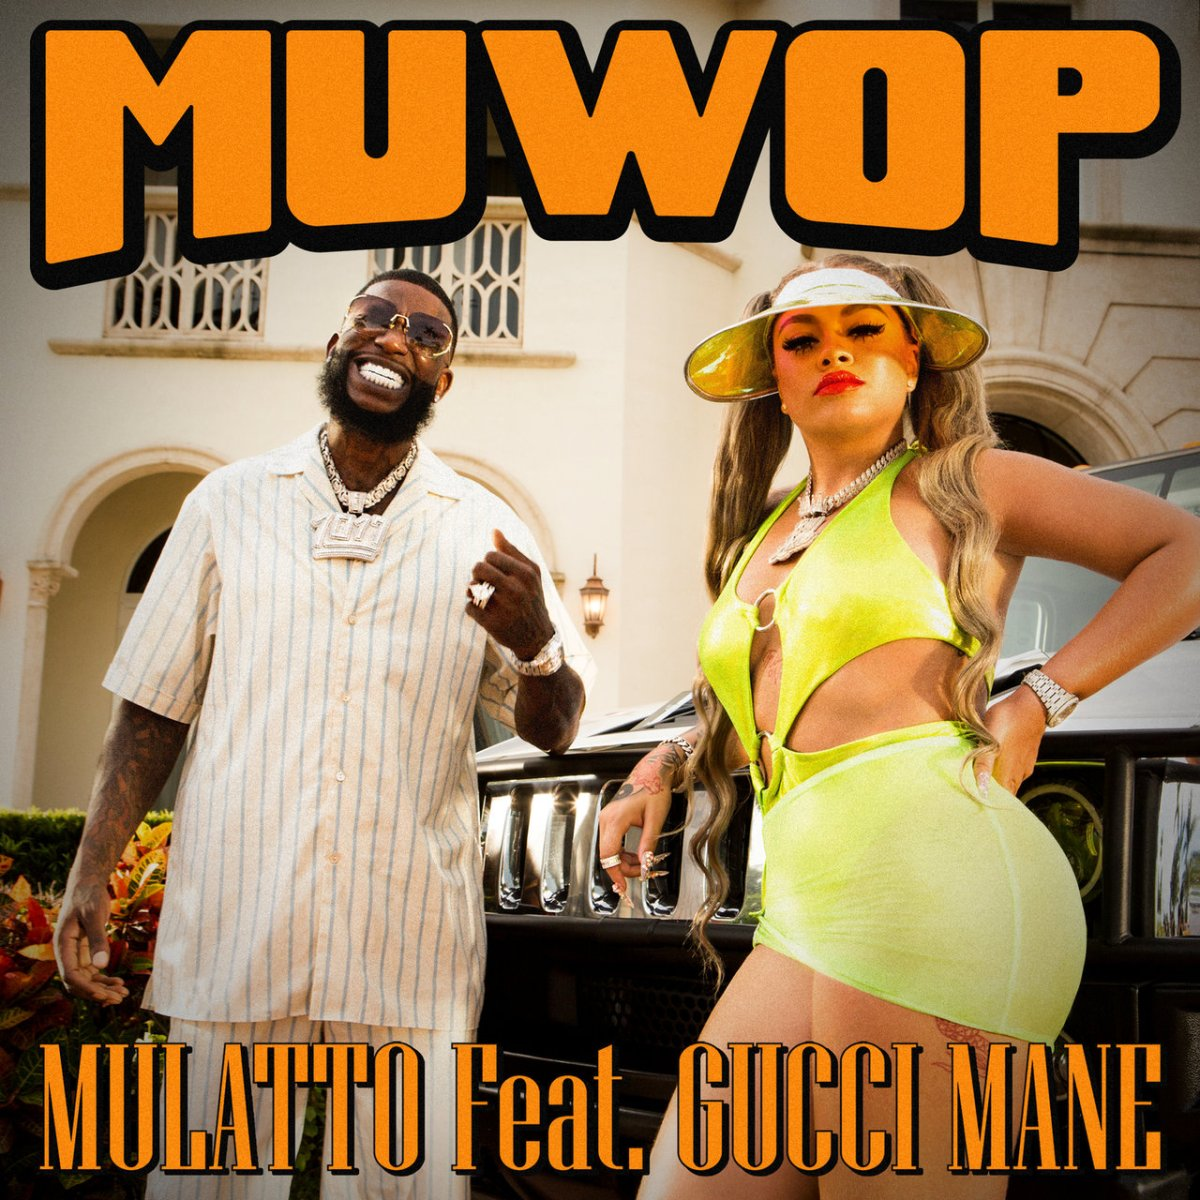 Mulatto - Muwop (ft. Gucci Mane) (Cover)